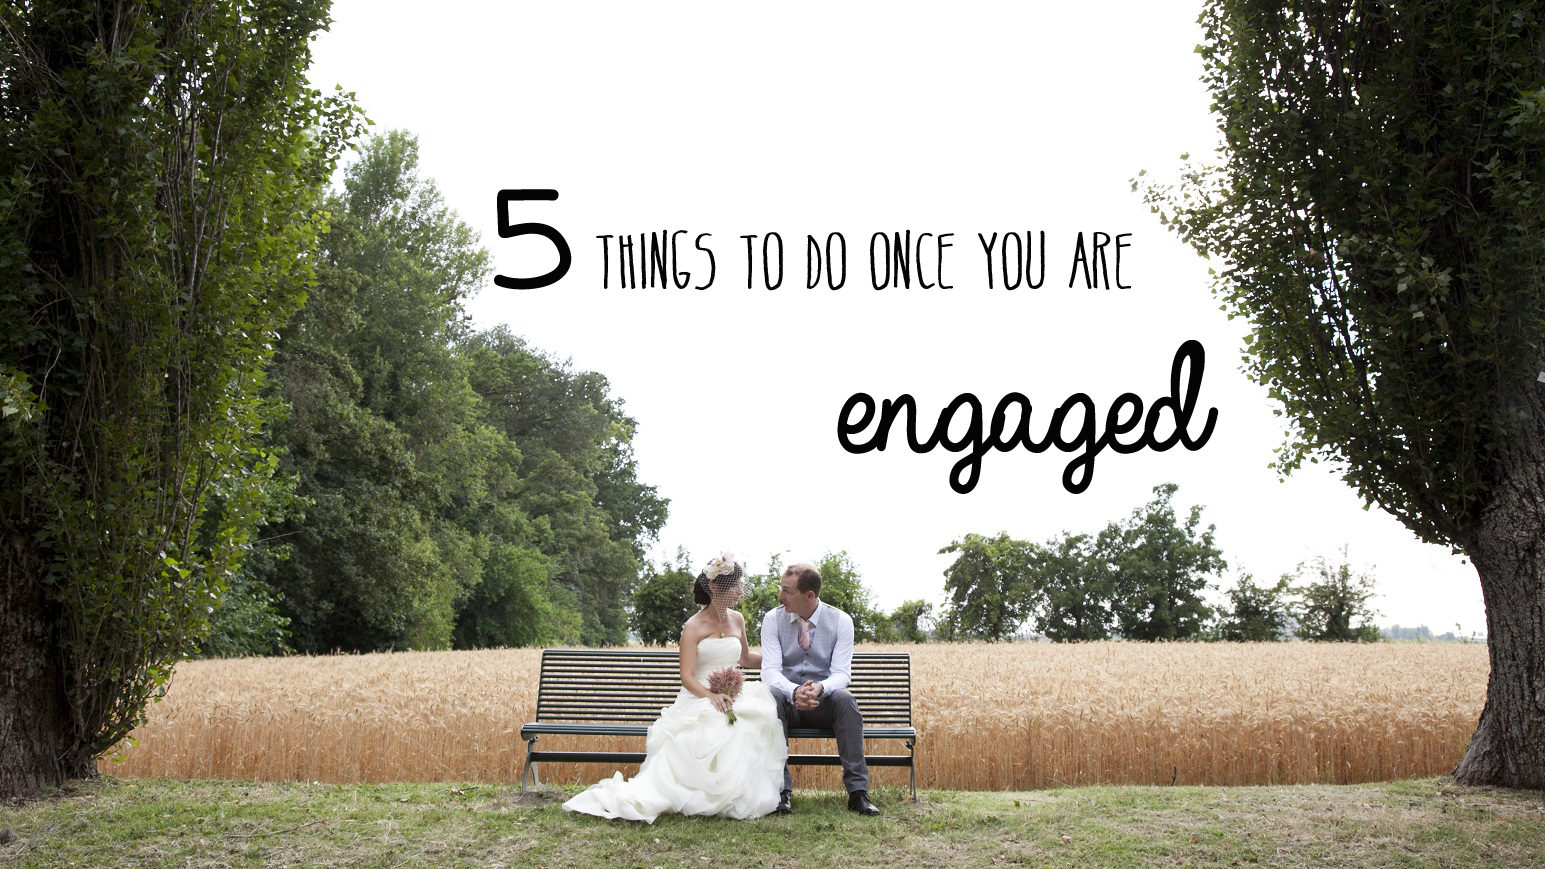 5thingstodoonceyouareengaged